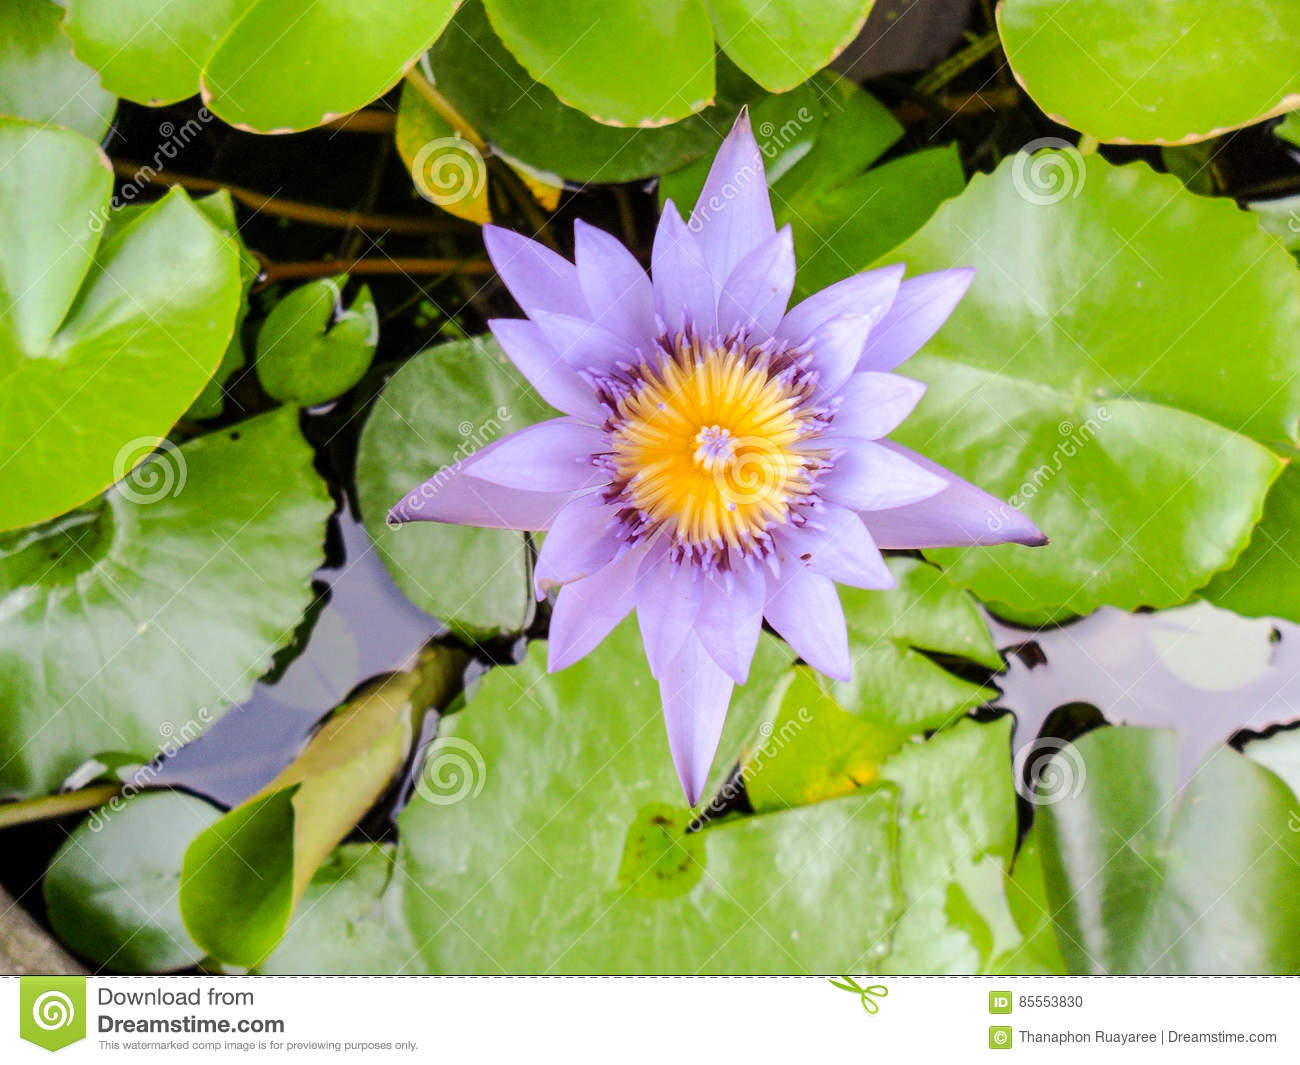 Lotus flower for buddhism stock photo image of garden 85553830 lotus flower for buddhism mightylinksfo